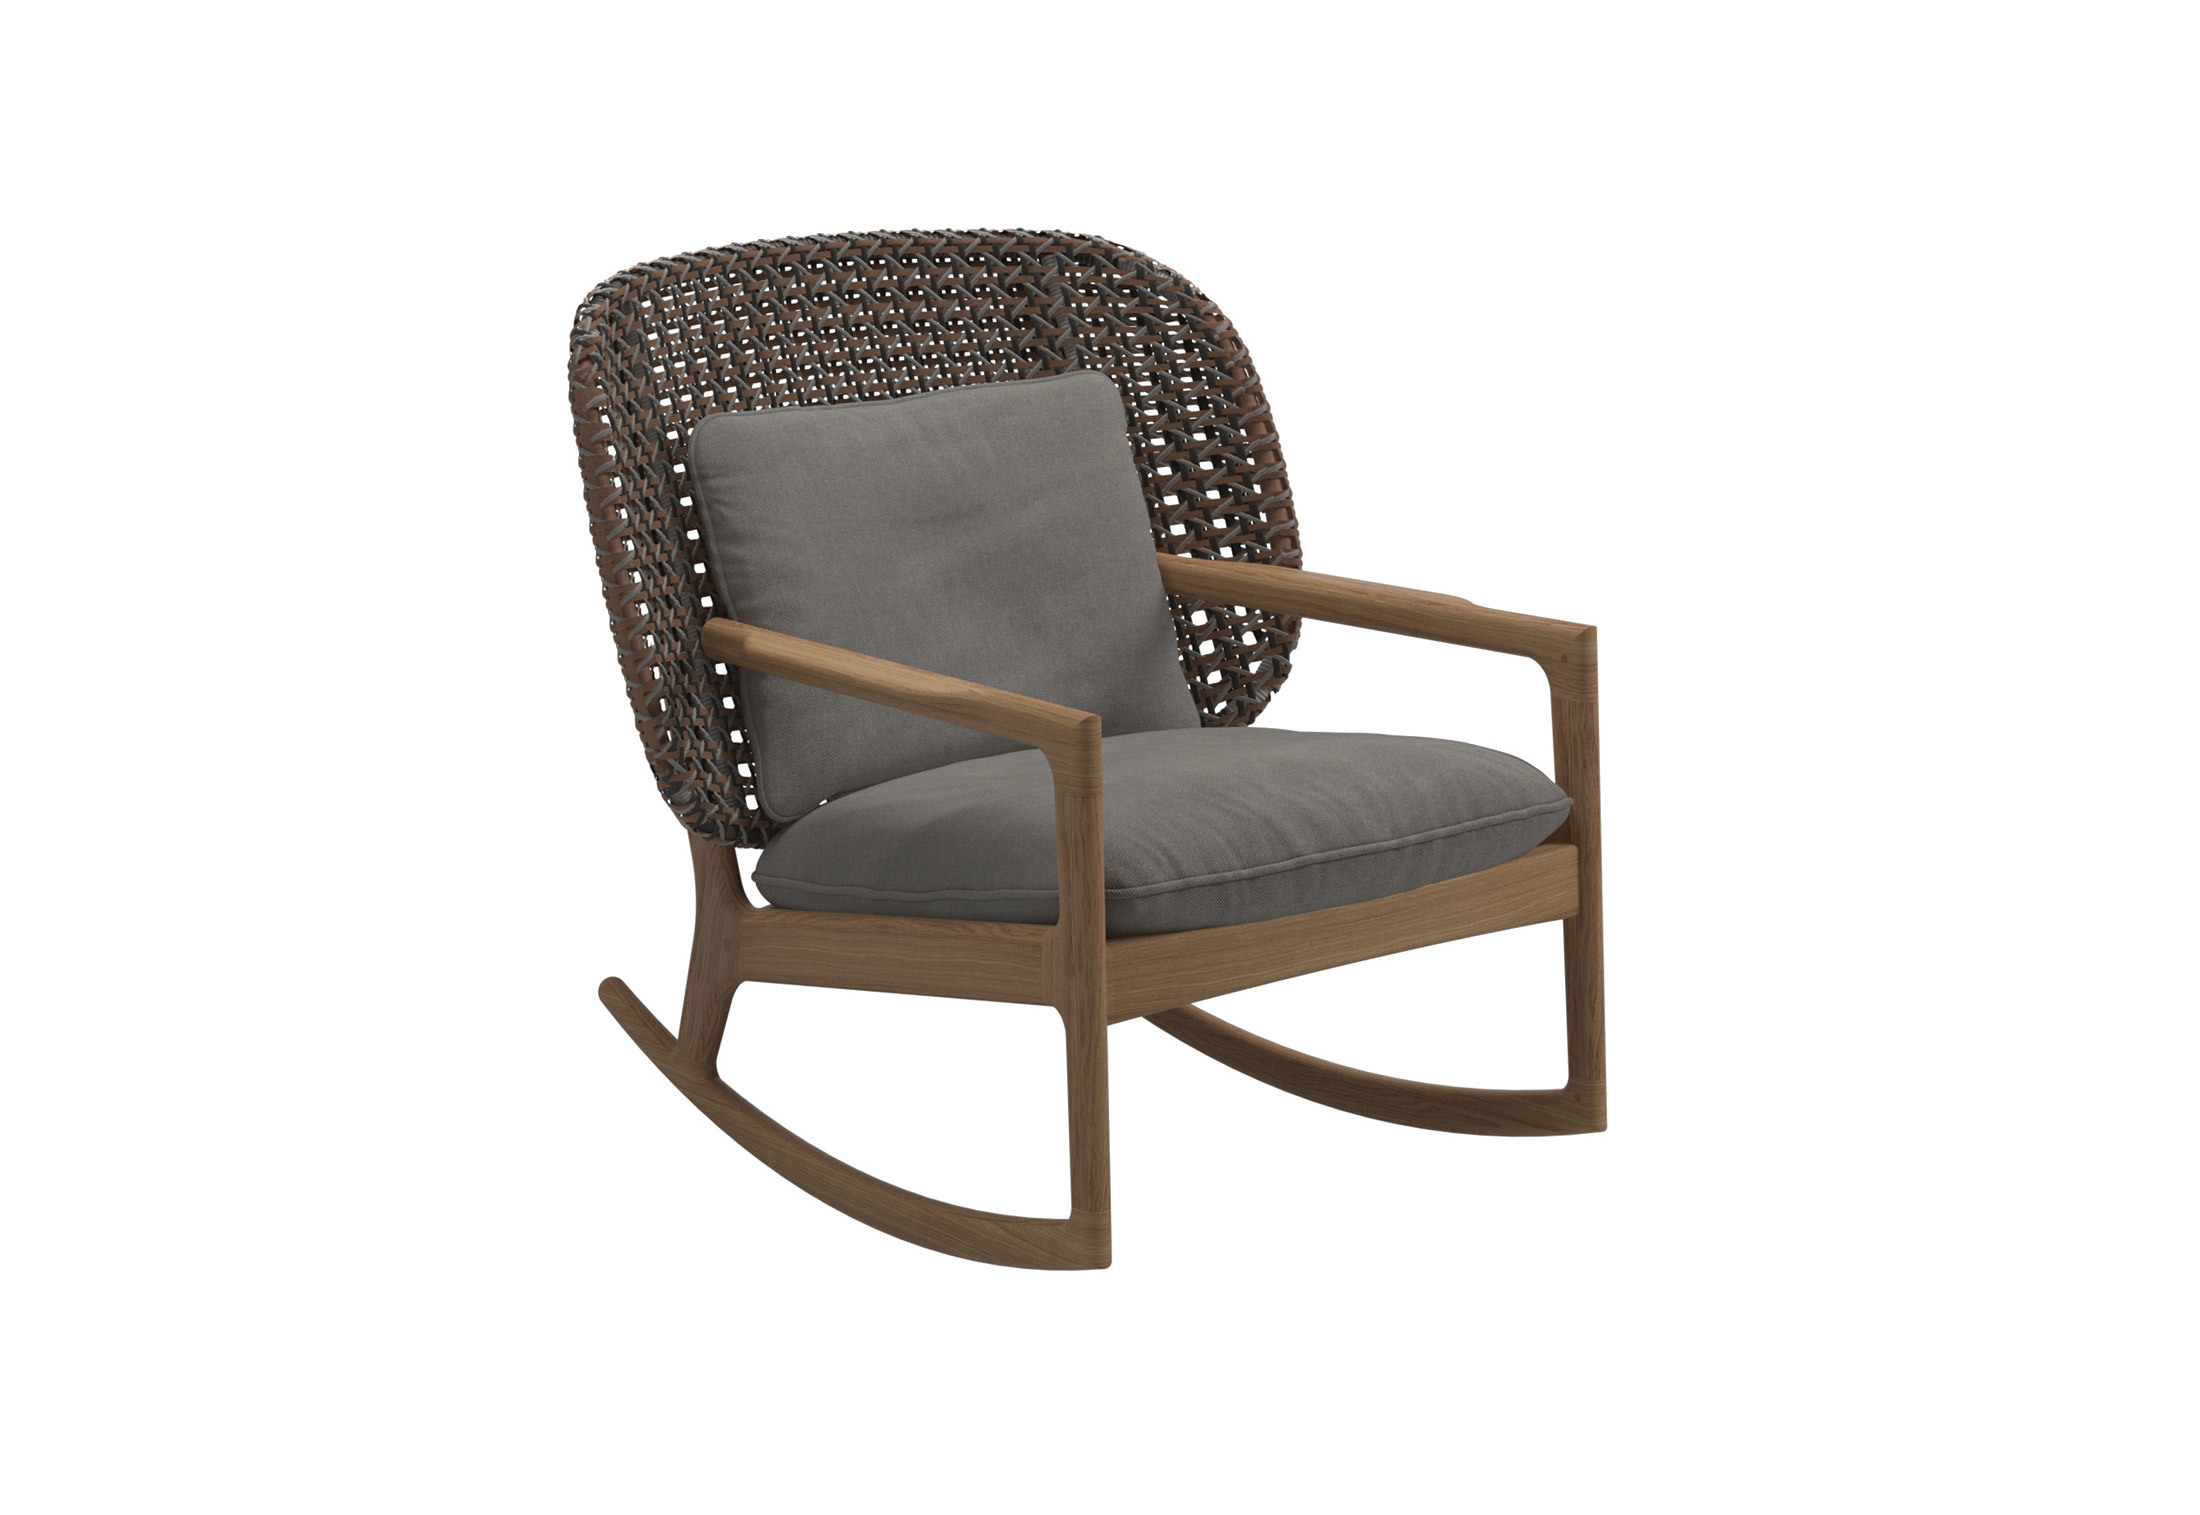 Kay Low Rocking Chair By Gloster Furniture Stylepark